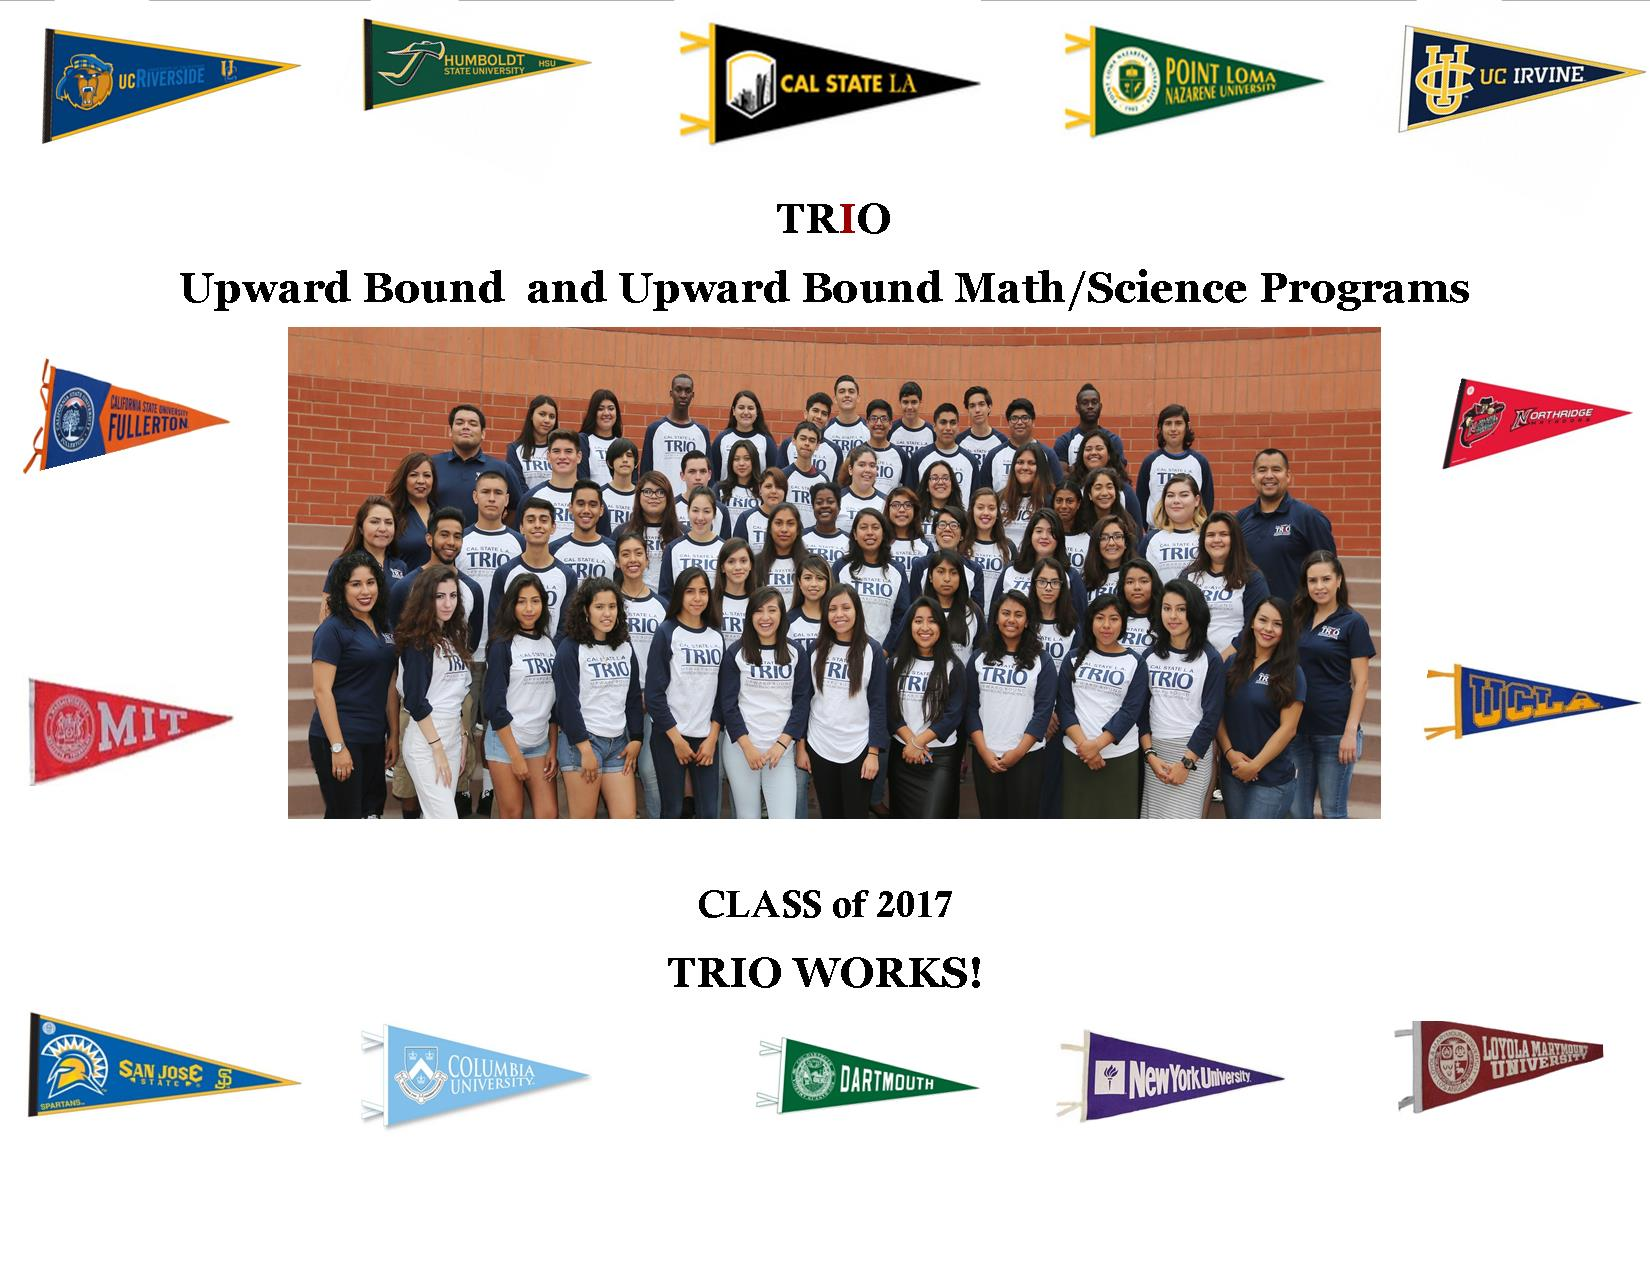 CSULA TRIO WORKS Class of 2017